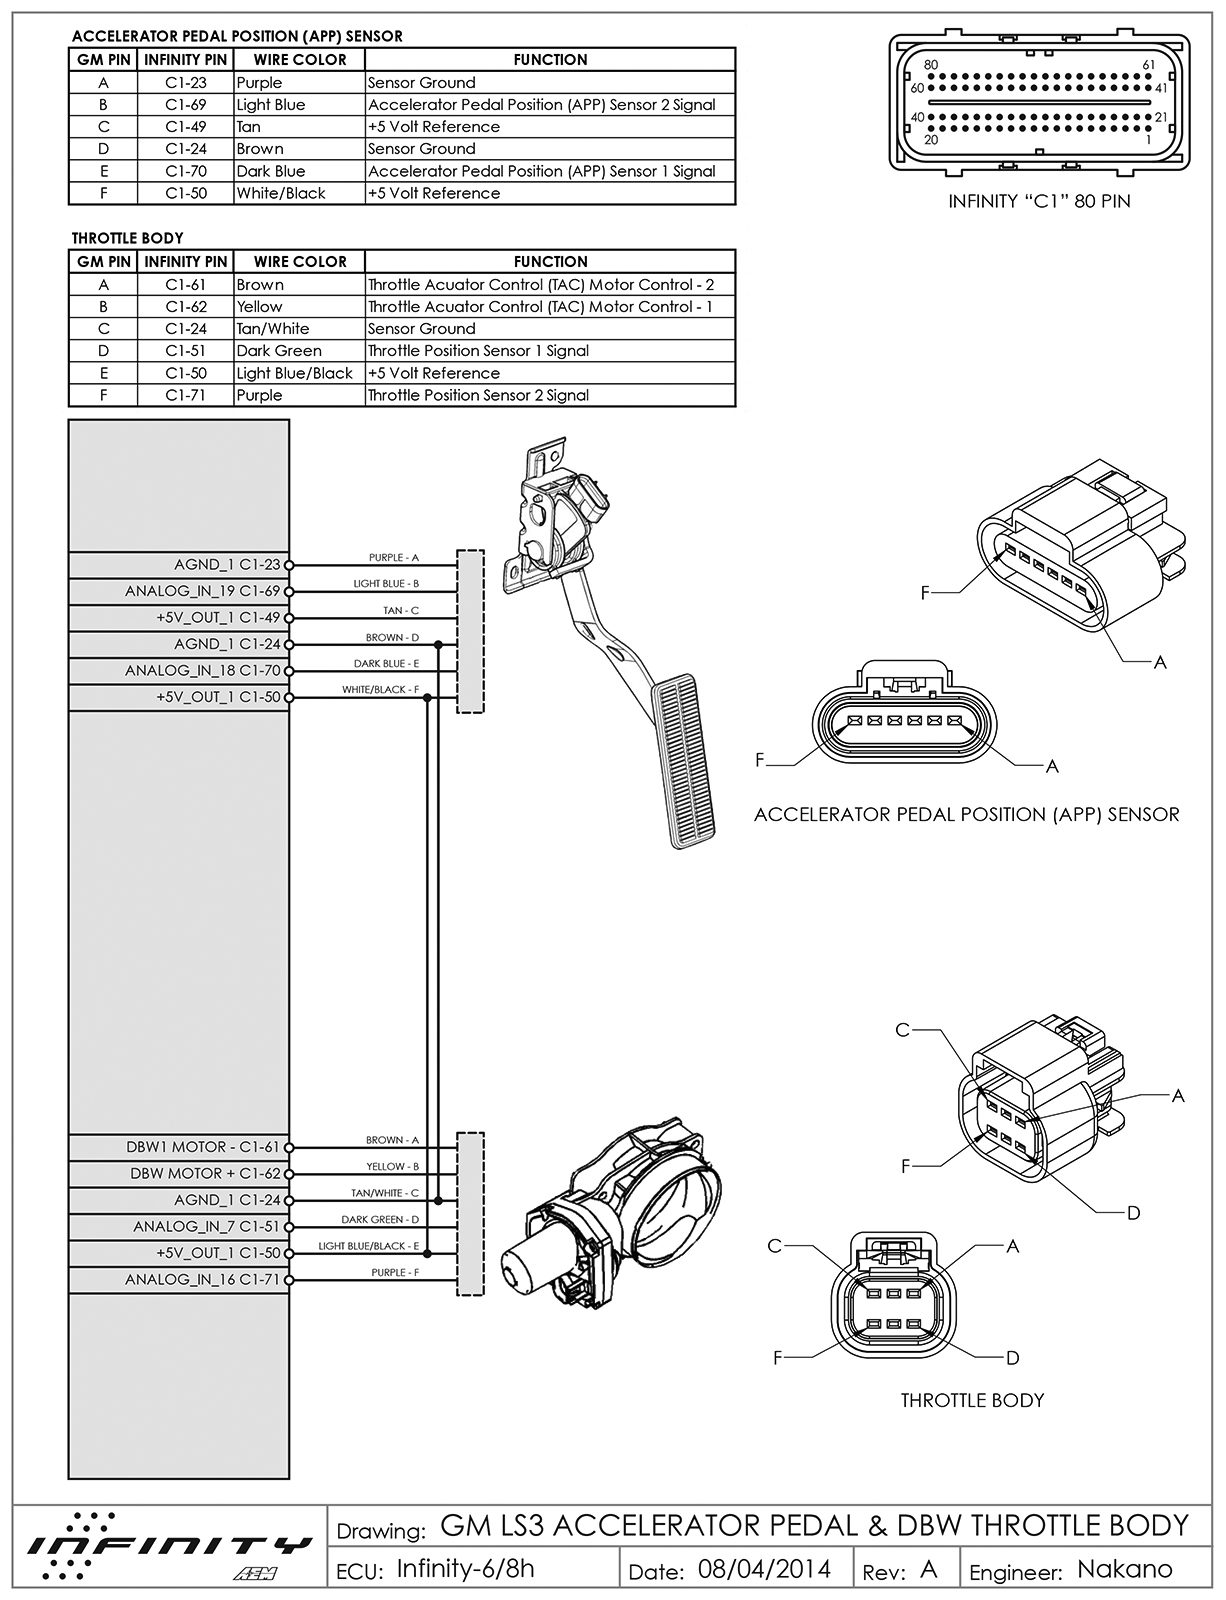 2002 2004 Nissan Maf 5 Wire Plug Diagram | Wiring Diagram Nissan Maf Sensor Wiring Diagram on maf sensor wiring harness connector, truck pigtail electrical connection diagram, maf sensor cable, maf sensor operation, speed sensor wiring diagram, maf sensor engine, flow sensor diagram, maf sensor repair, maf sensor fuse, maf sensor relay, toyota maf sensor diagram, maf sensor circuit diagram, maf sensor parts diagram, knock sensor wiring diagram, 02 sensor wiring diagram, maf sensor troubleshooting, camshaft position sensor wiring diagram, maf sensor voltage, maf sensor specifications, maf sensor hose,